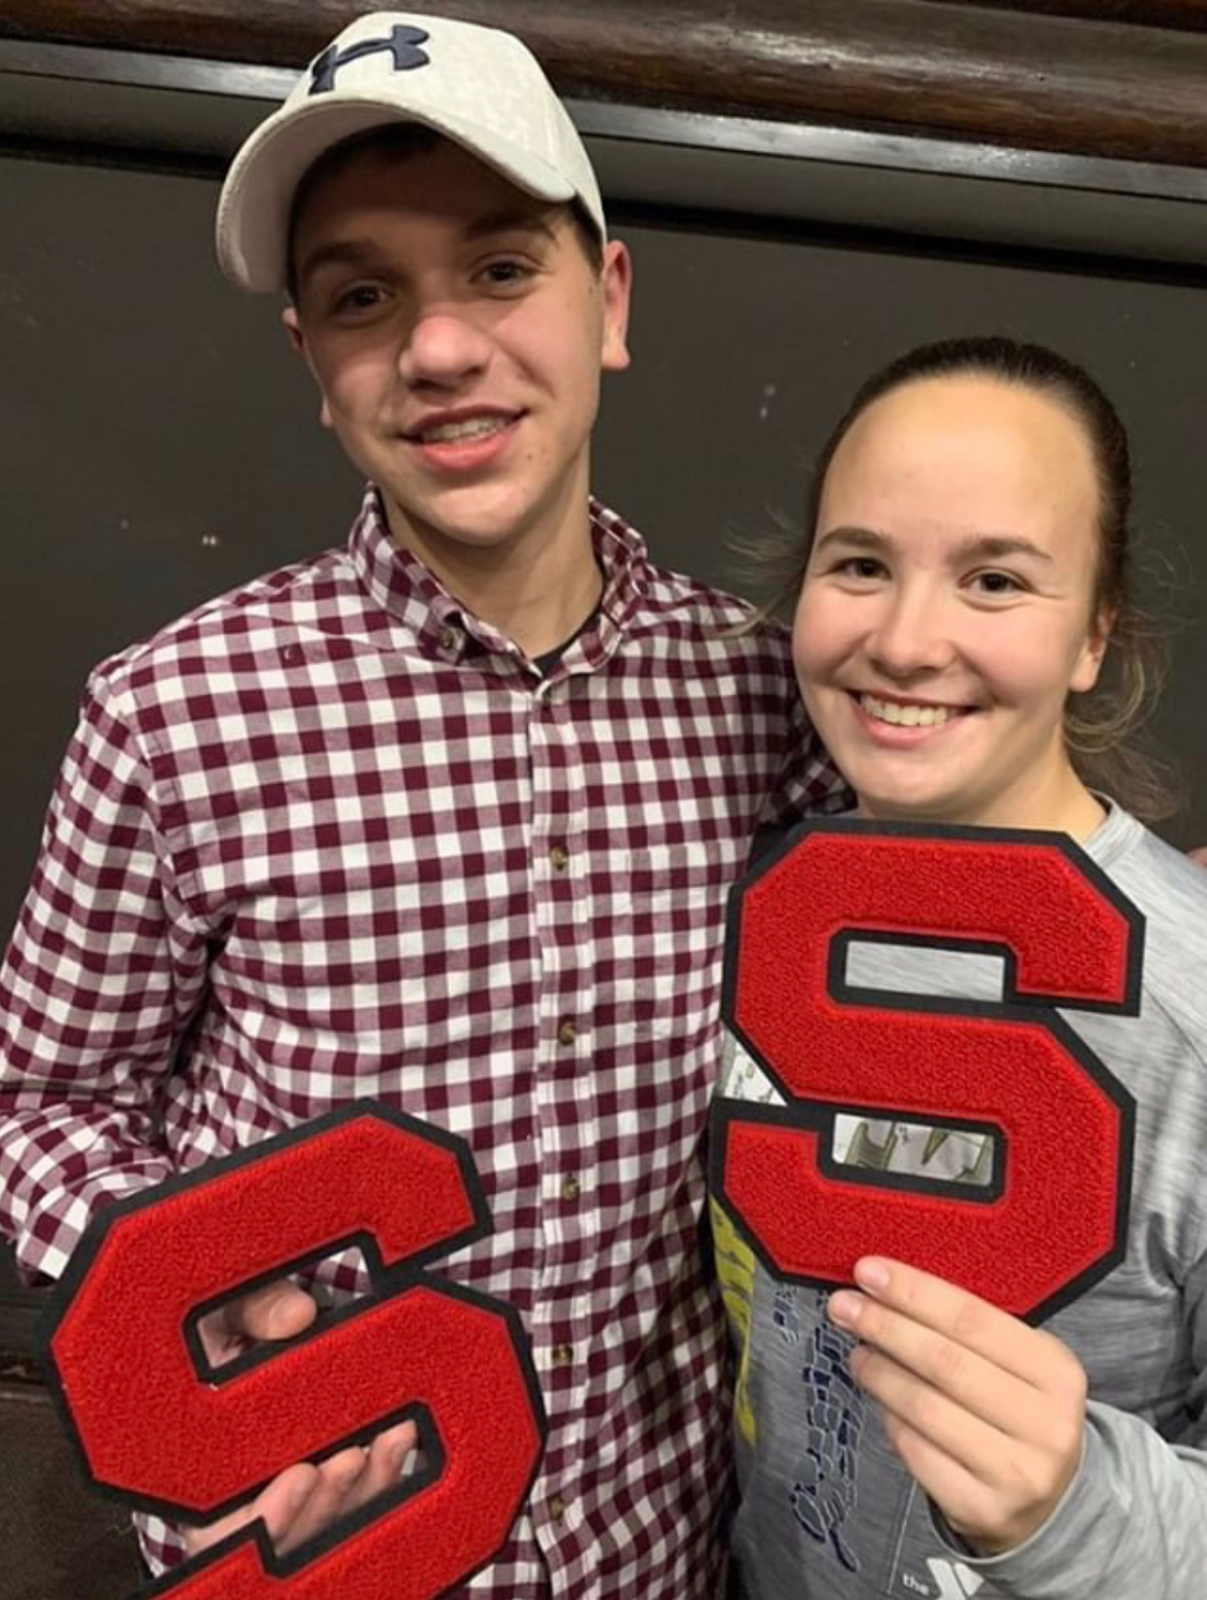 Two SV Students Honored by RYRC #WeAreMCUSD